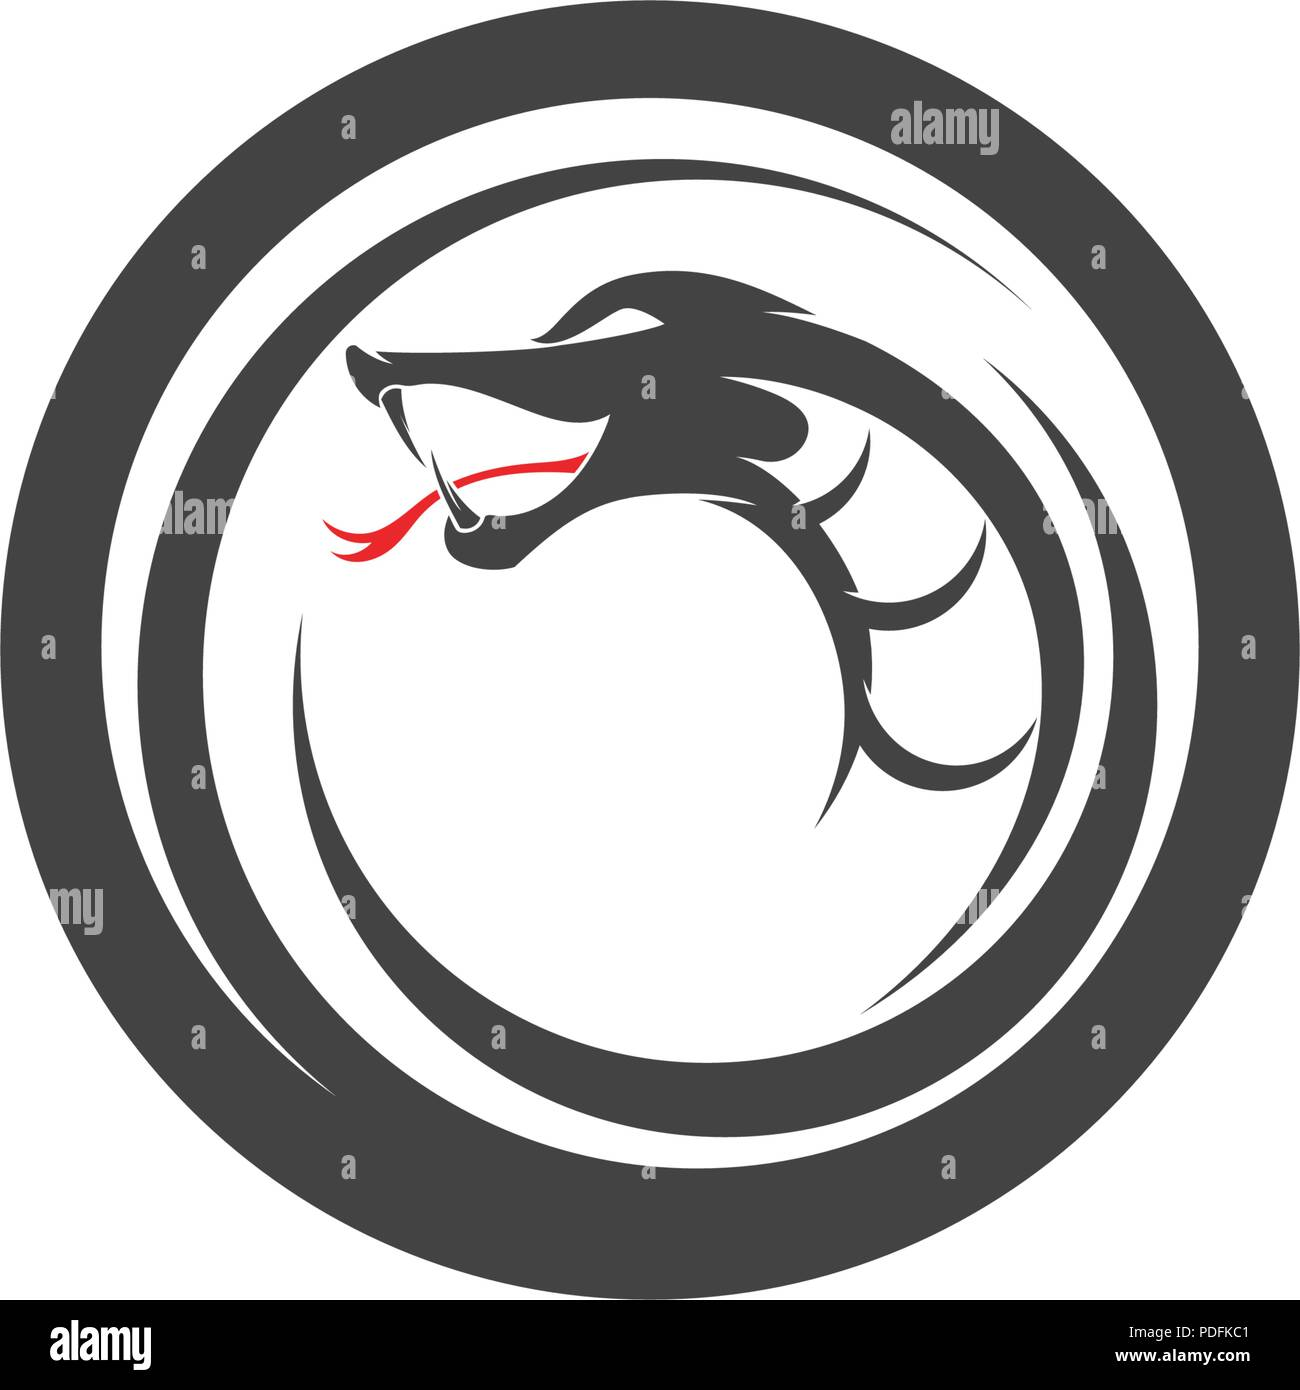 vector snake simple logo design element danger snake icon viper